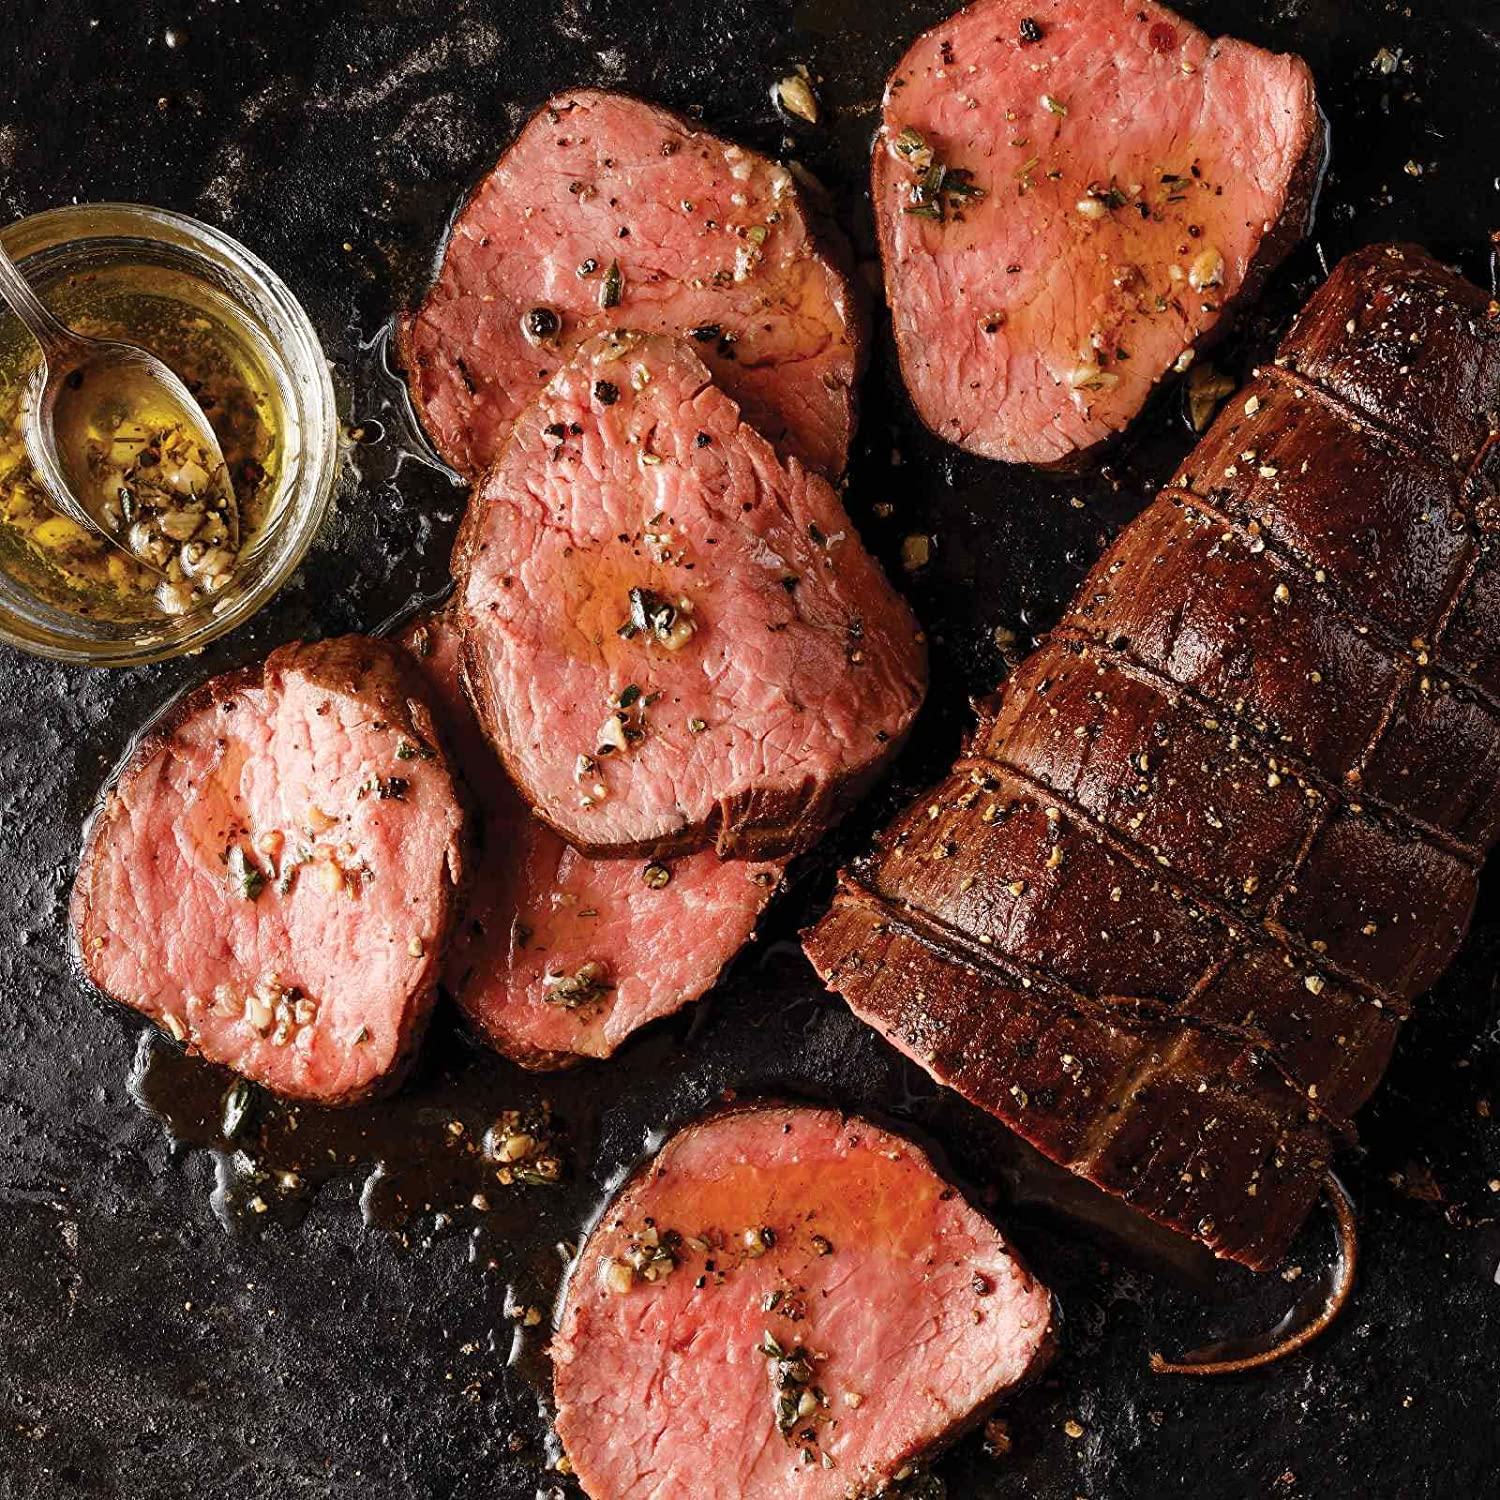 Omaha Steaks 1 (3 lbs.) Private Reserve Chateaubriand Roast